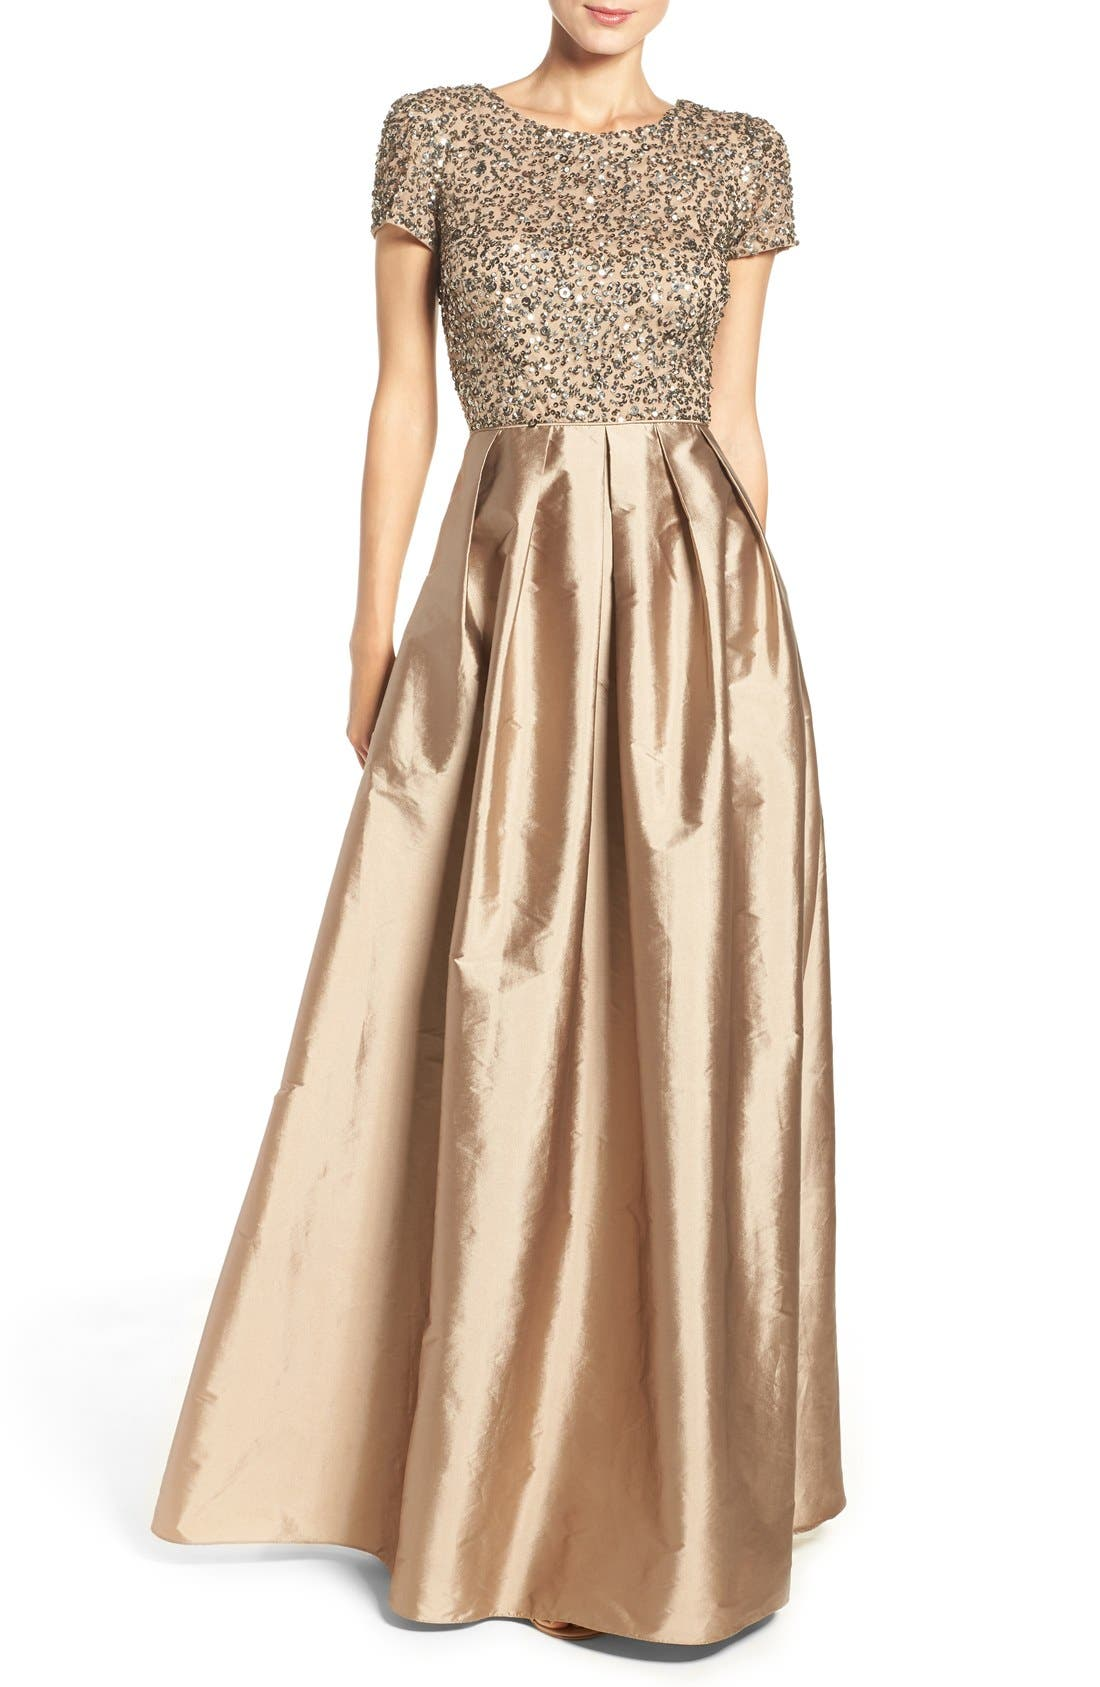 Alternate Image 1 Selected - Adrianna Papell Sequin Bodice Taffeta Ballgown